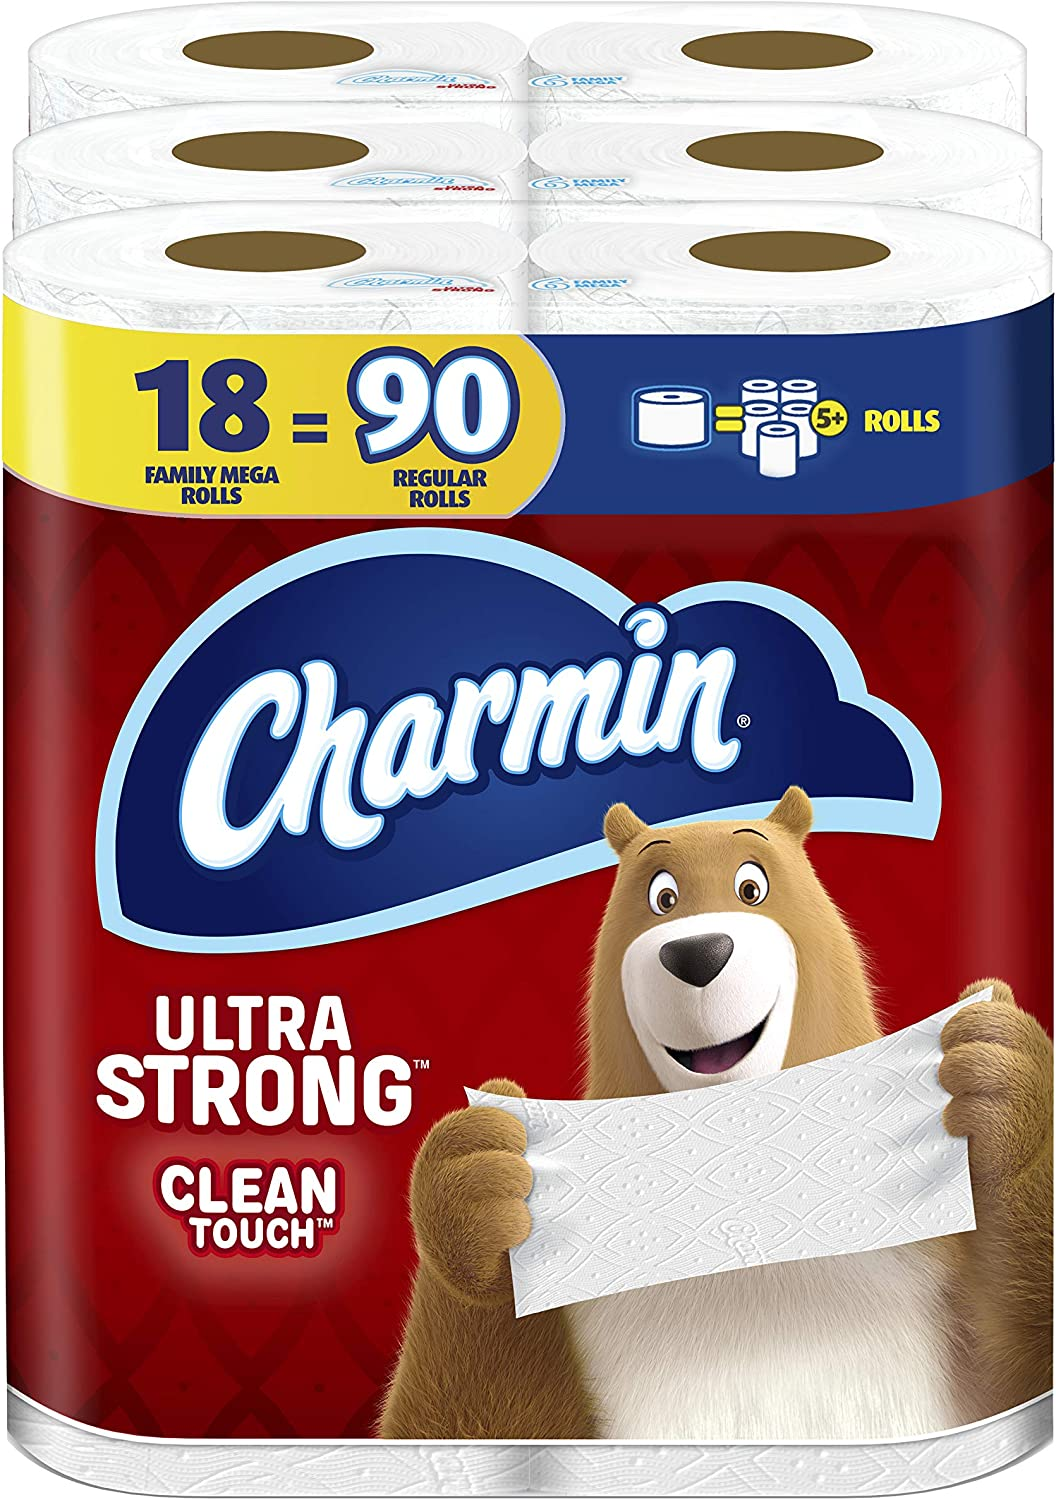 Charmin Ultra Strong Clean Touch Toilet Paper $20.74 Coupon